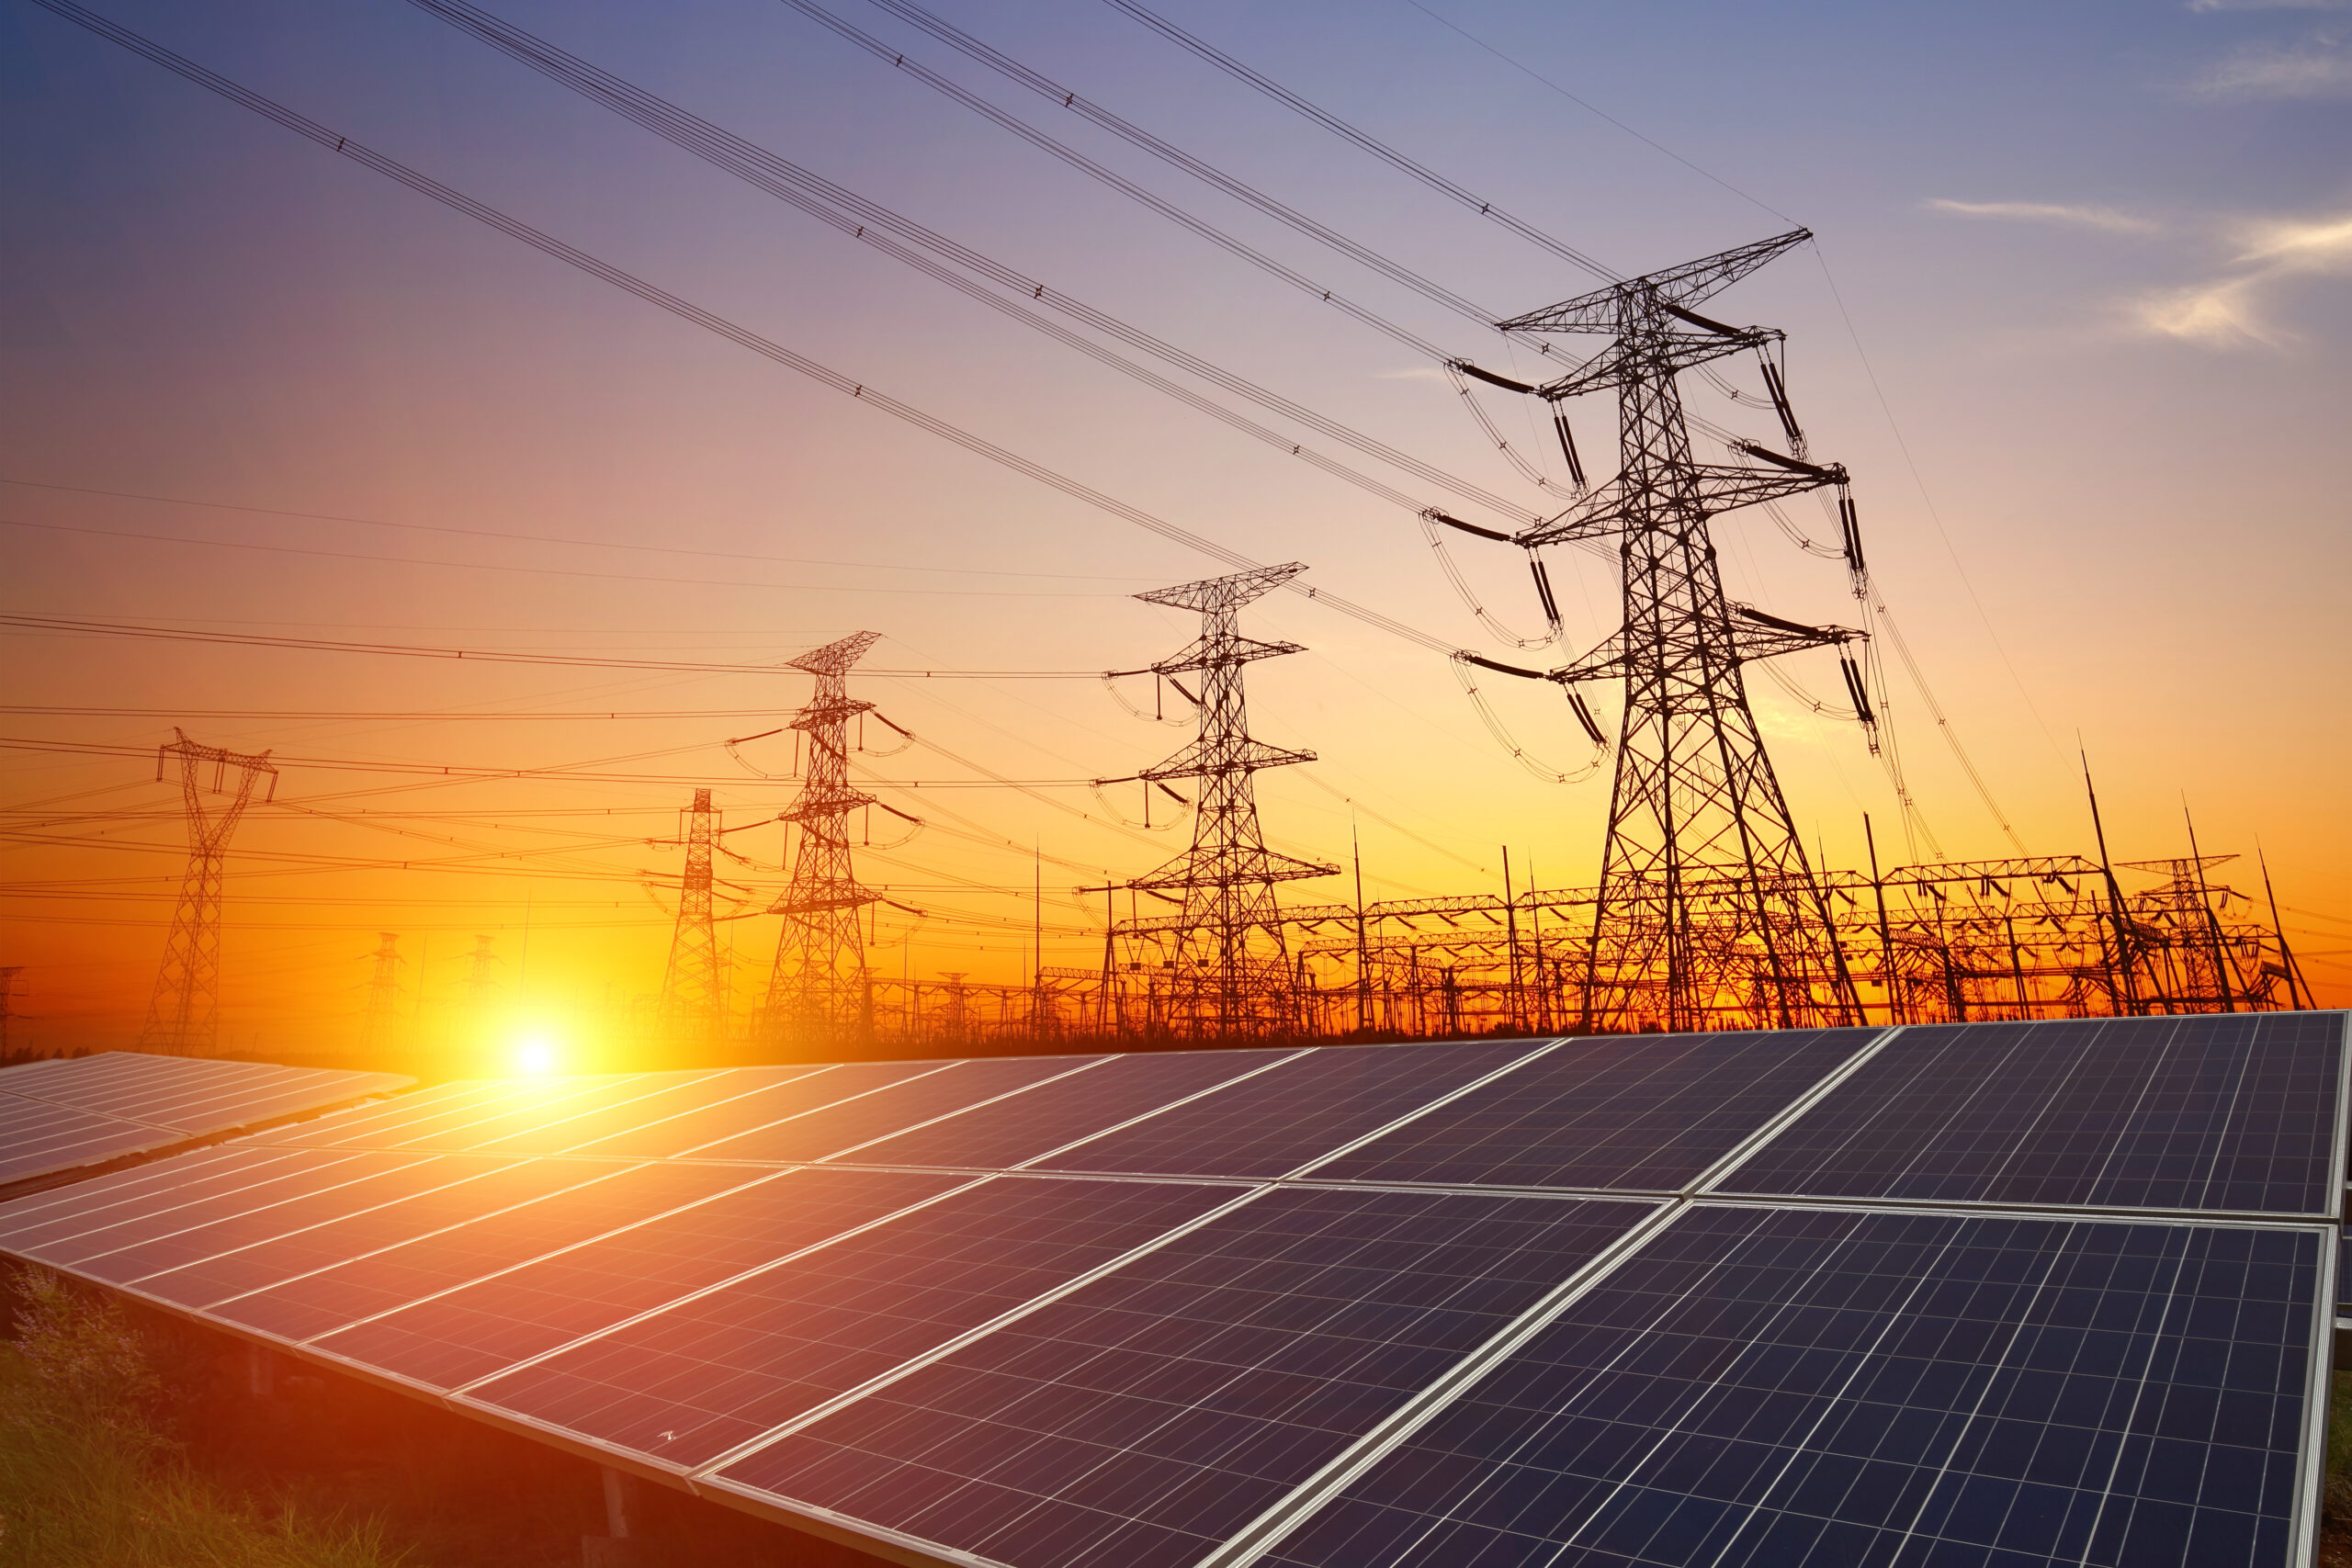 Interconnection issues emerging as solar's next obstacle for meaningful growth